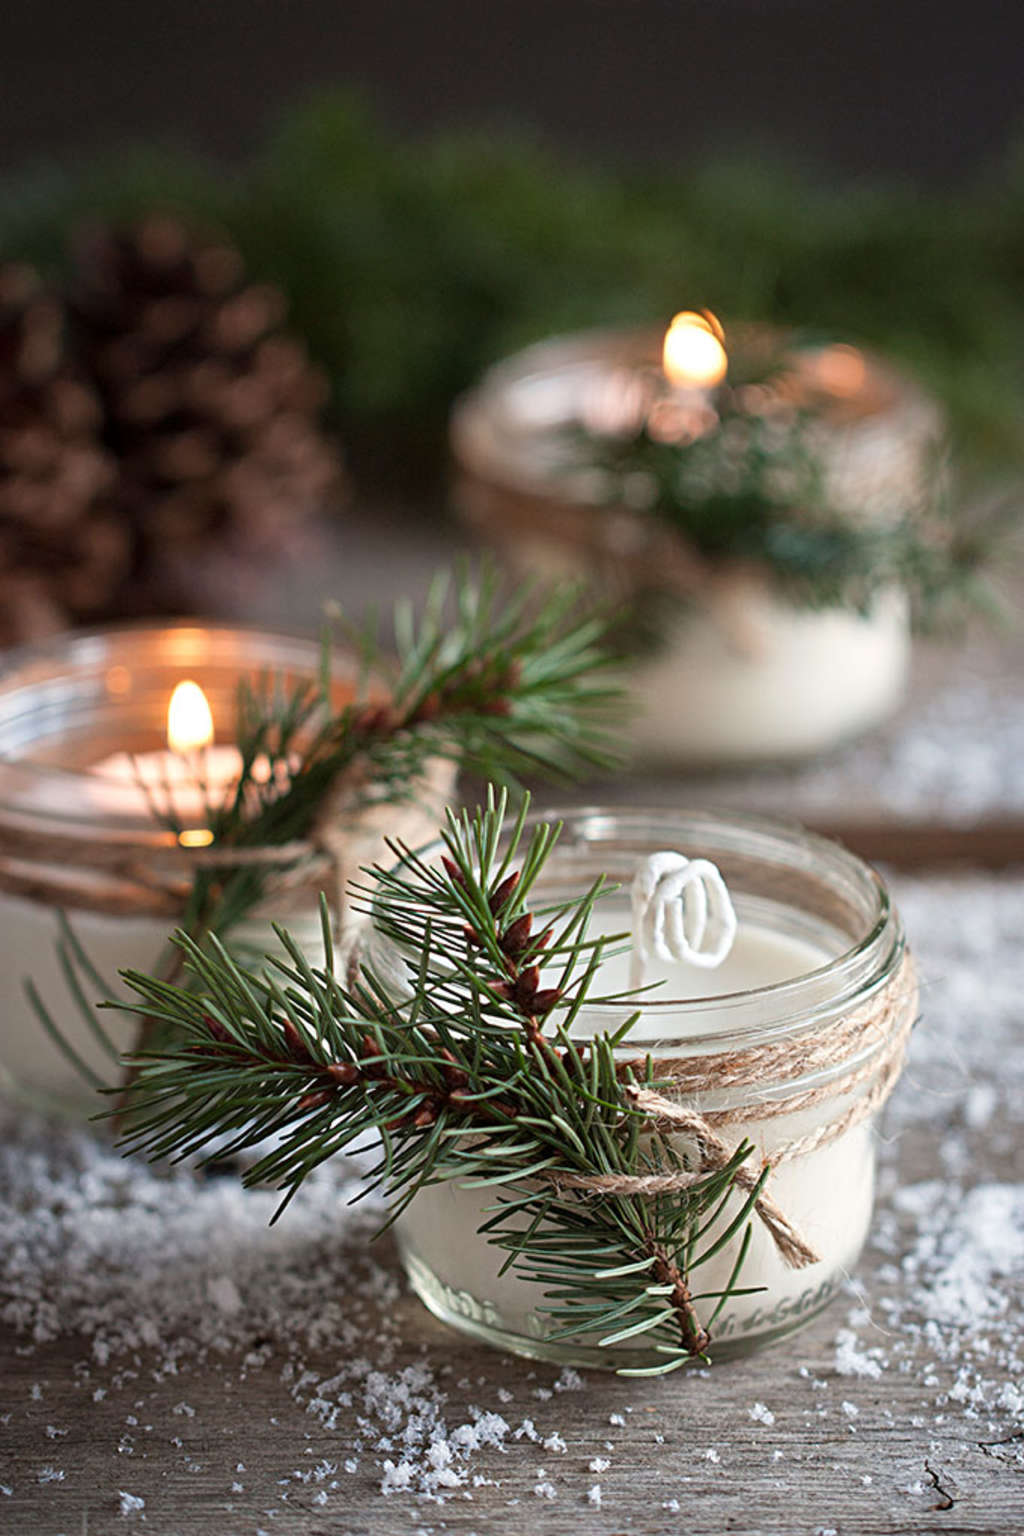 10 Ways to Make Your Home Smell Amazing for the Holidays